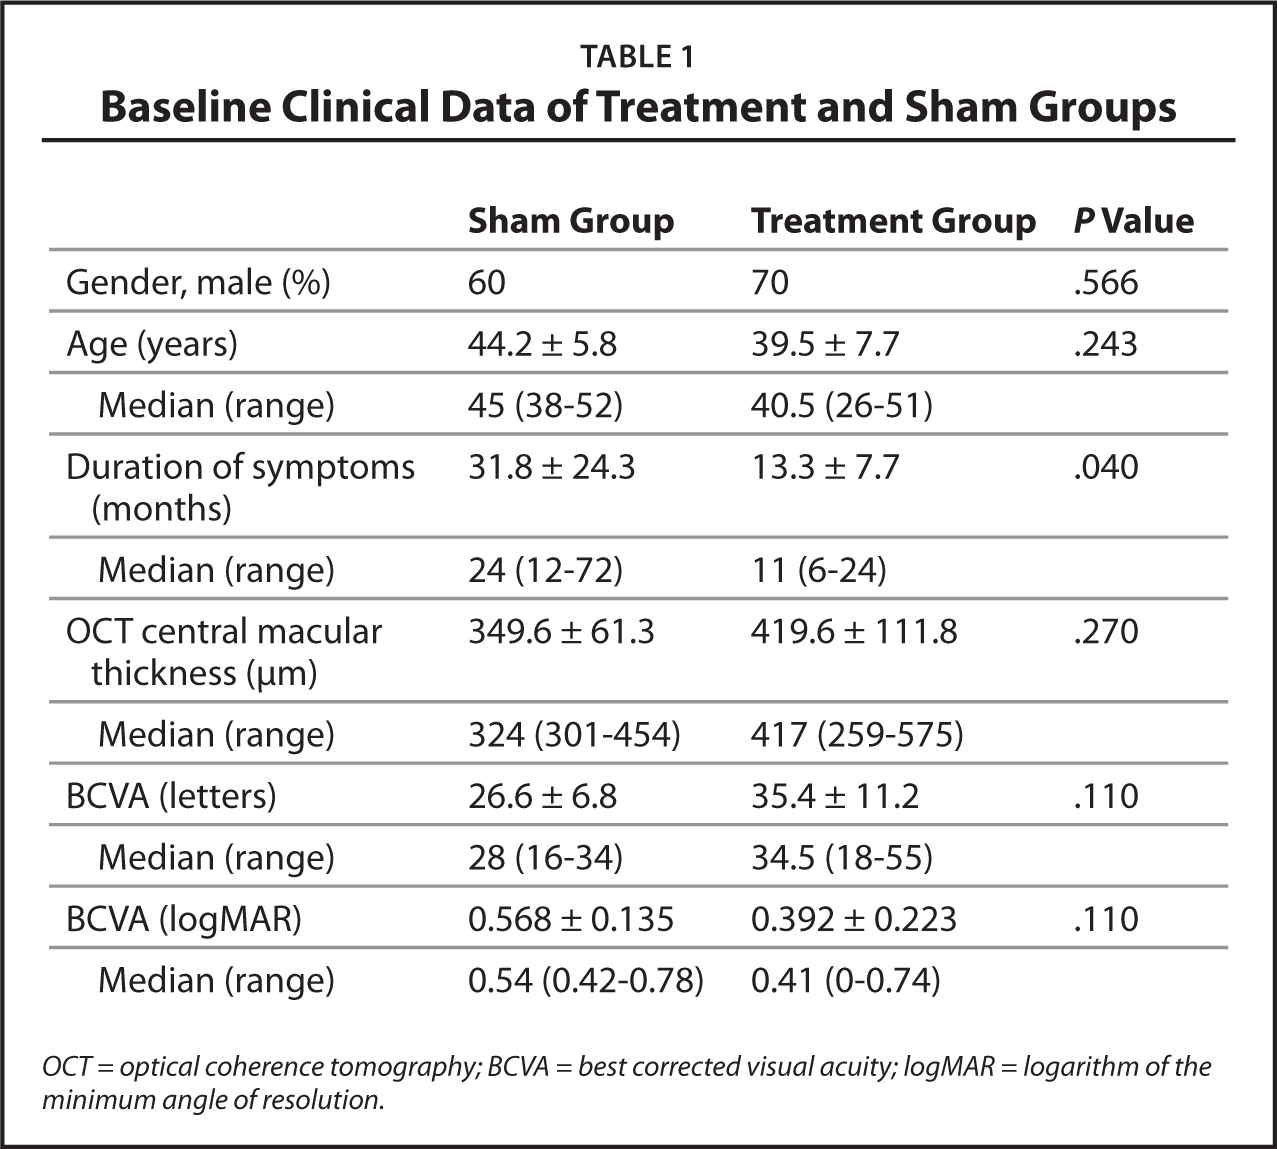 Baseline Clinical Data of Treatment and Sham Groups